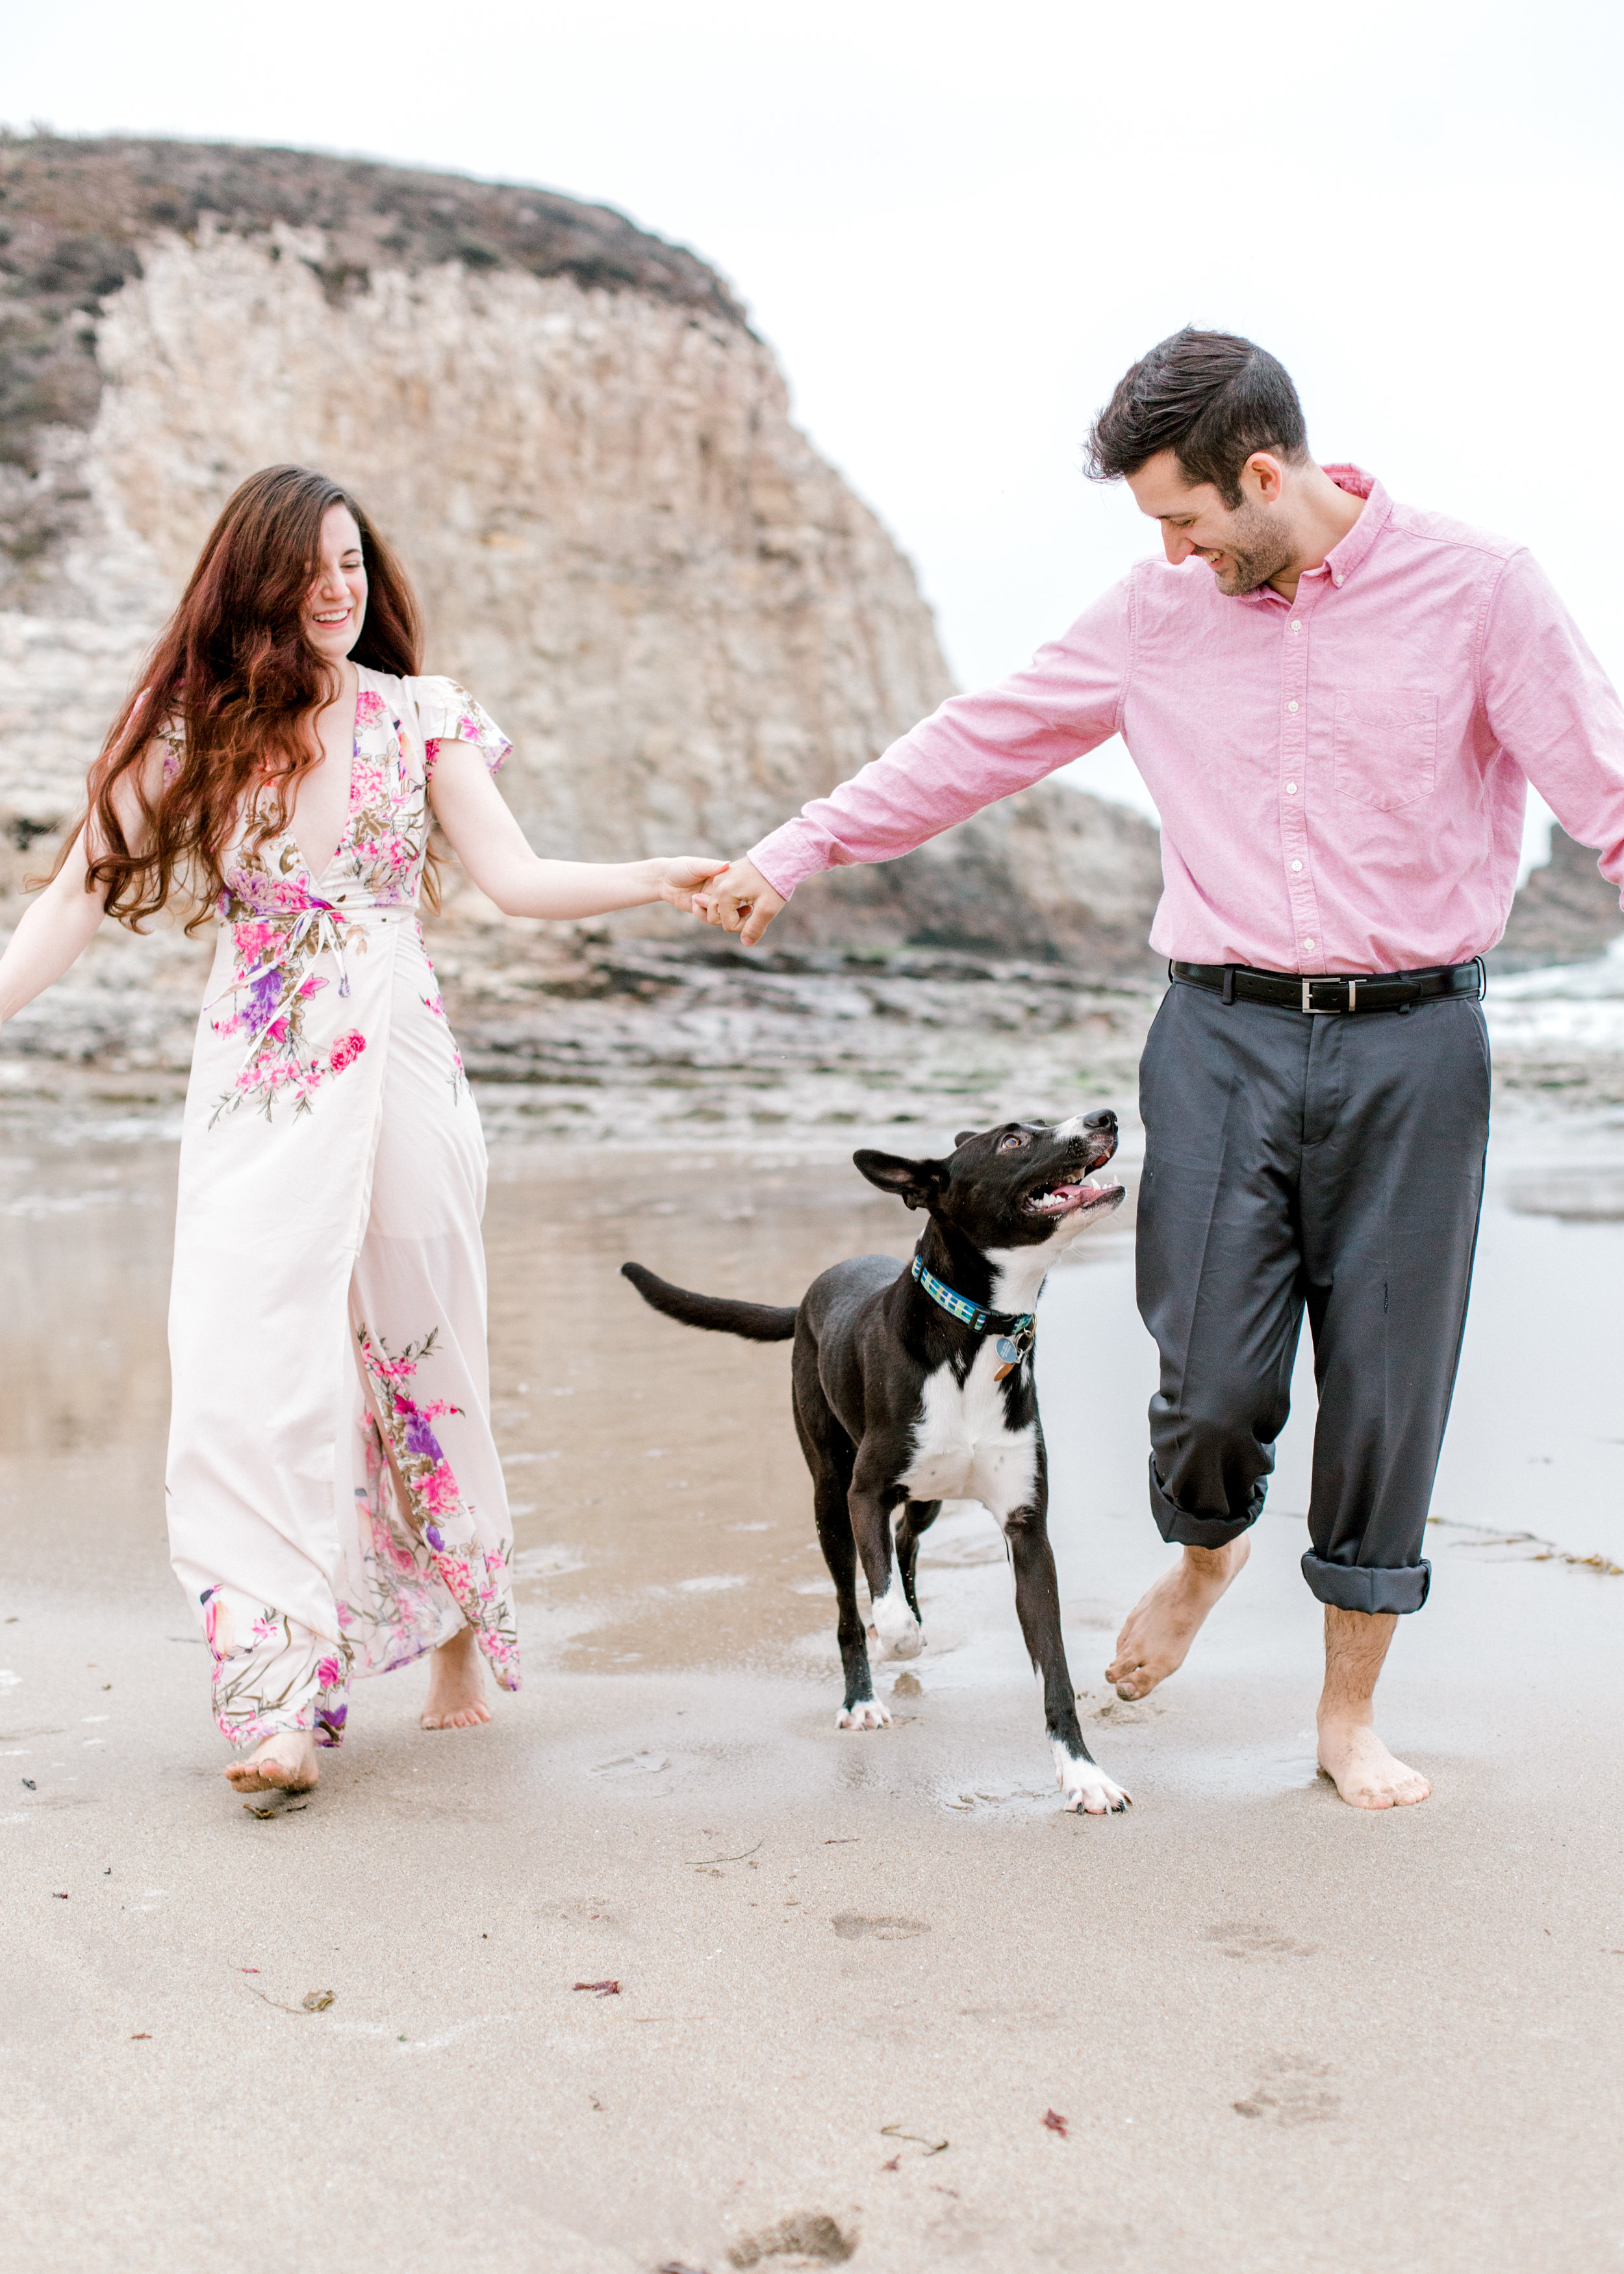 Lacey_Michelle_Photography_KS_Engaged_-6.jpg